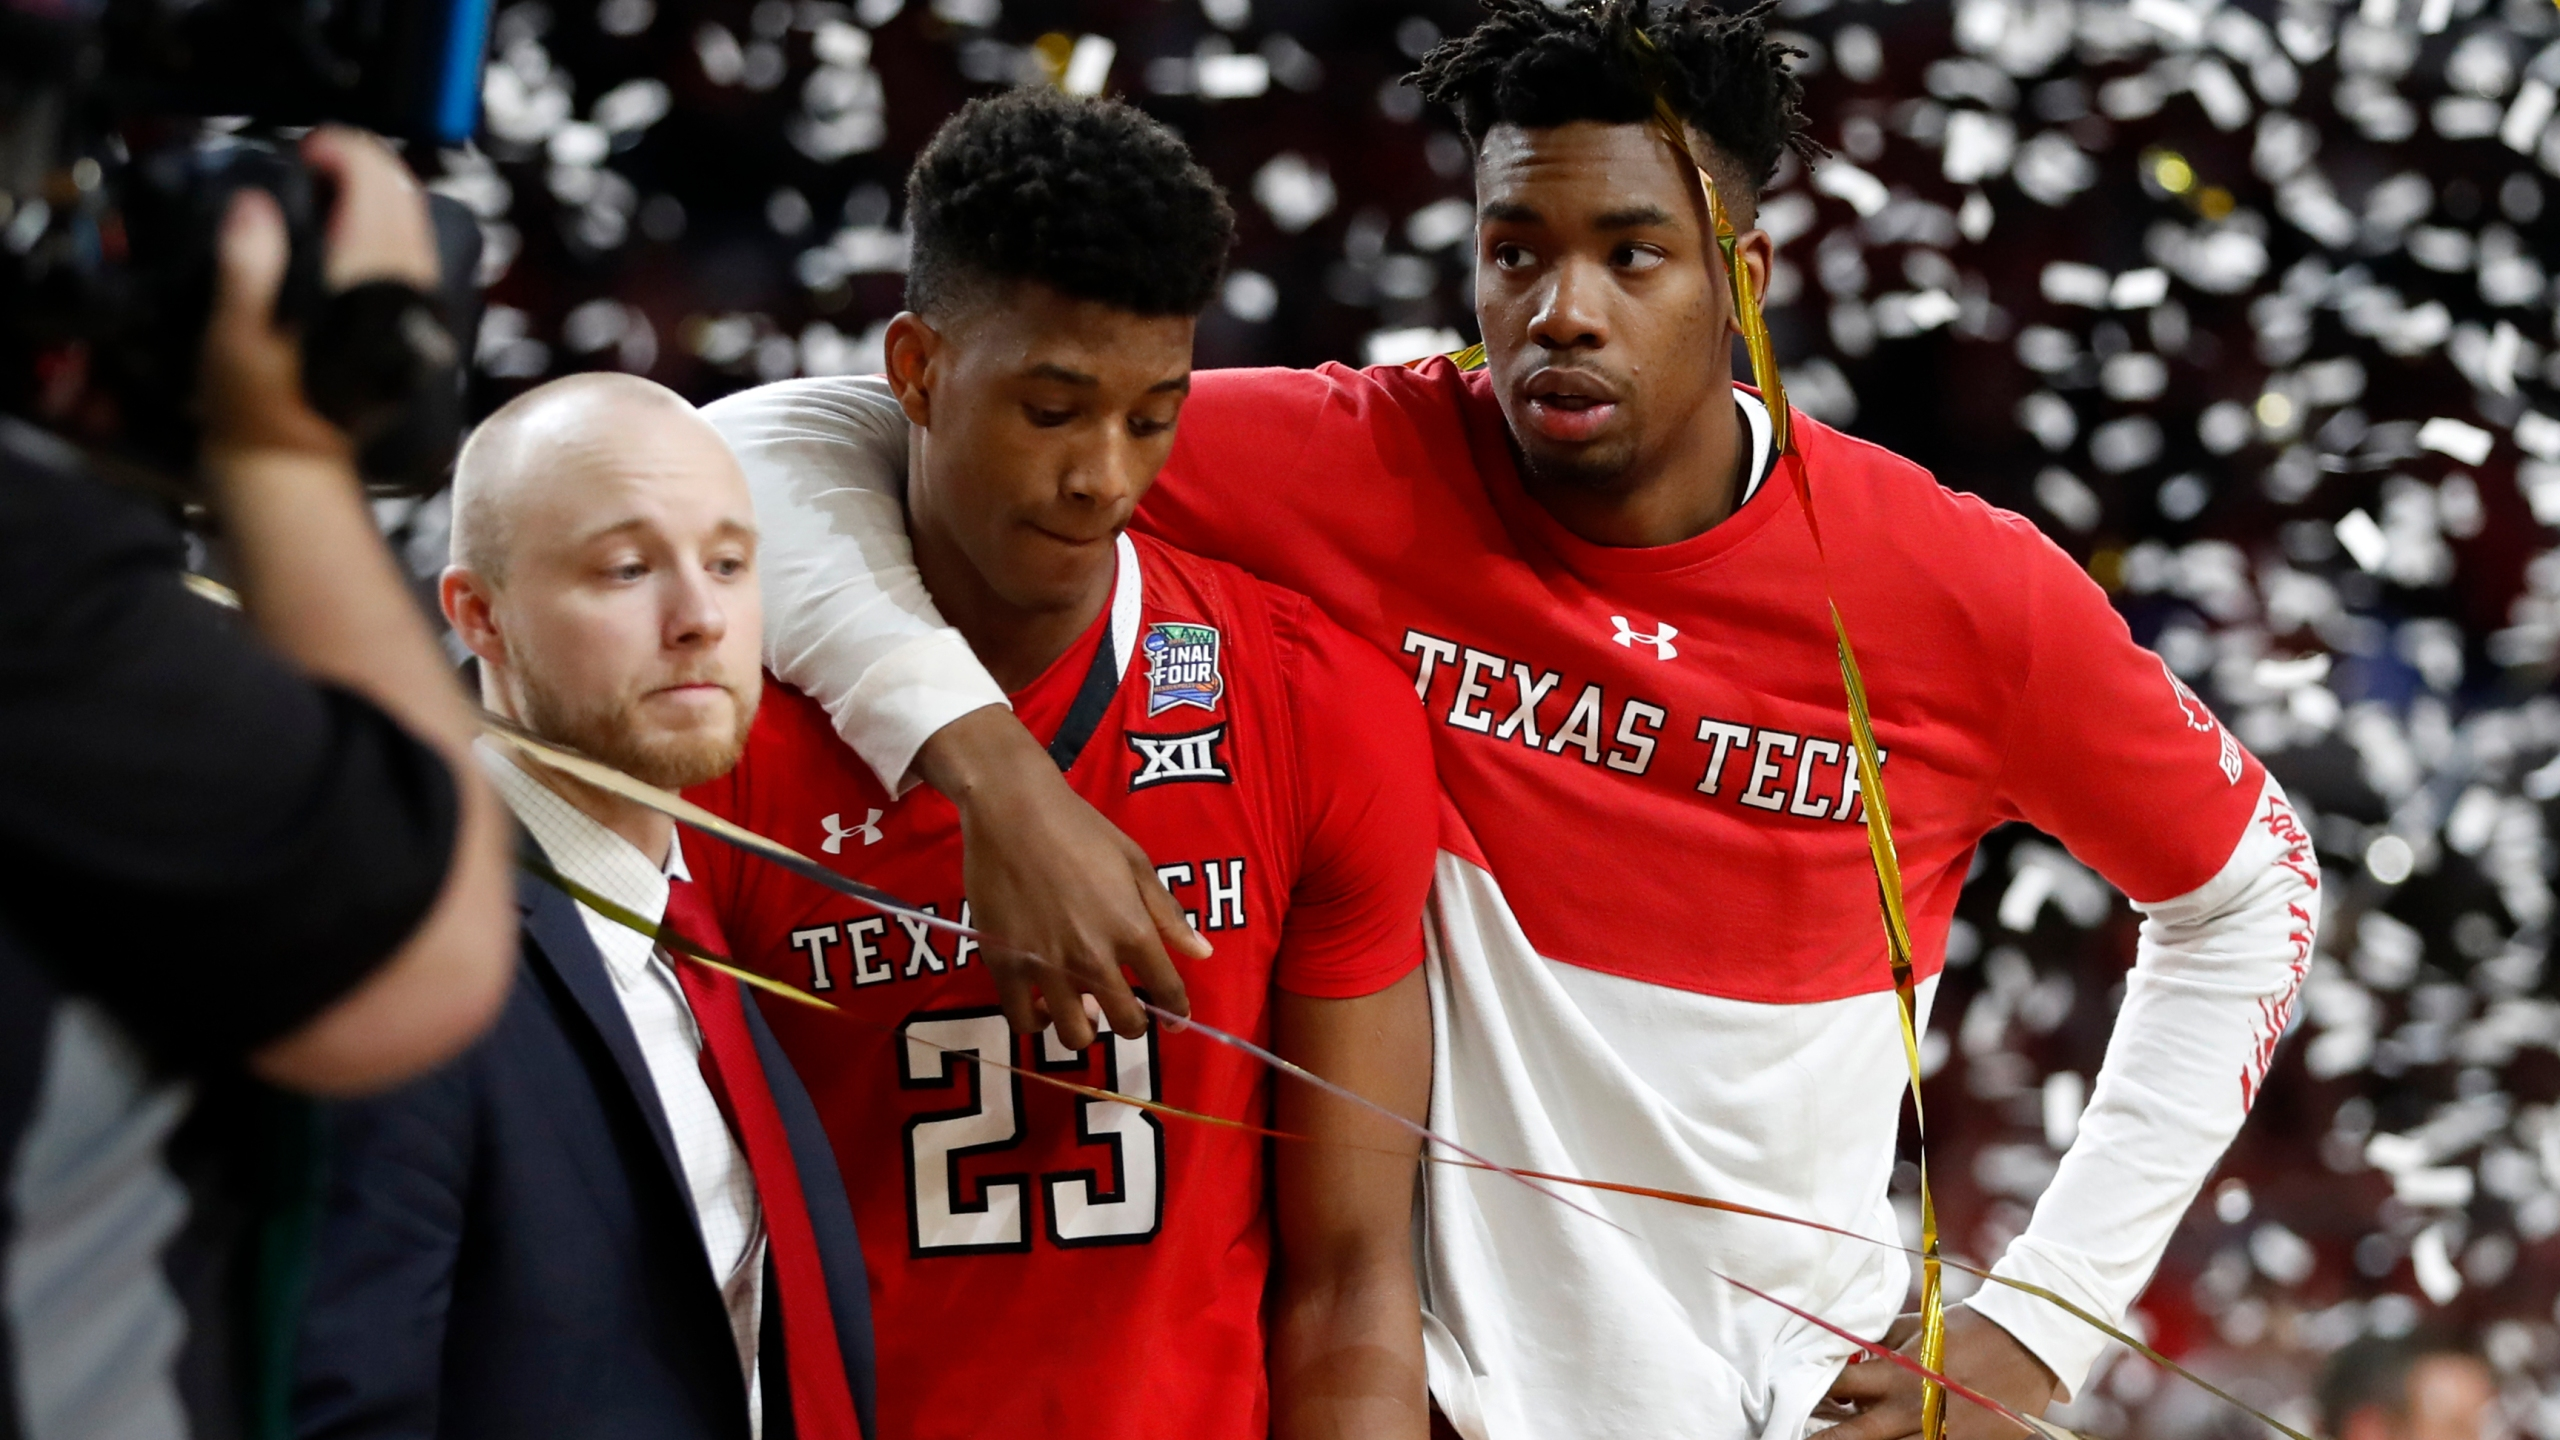 Final_Four_Texas_Tech_Virginia_Basketball_80769-159532.jpg48508897